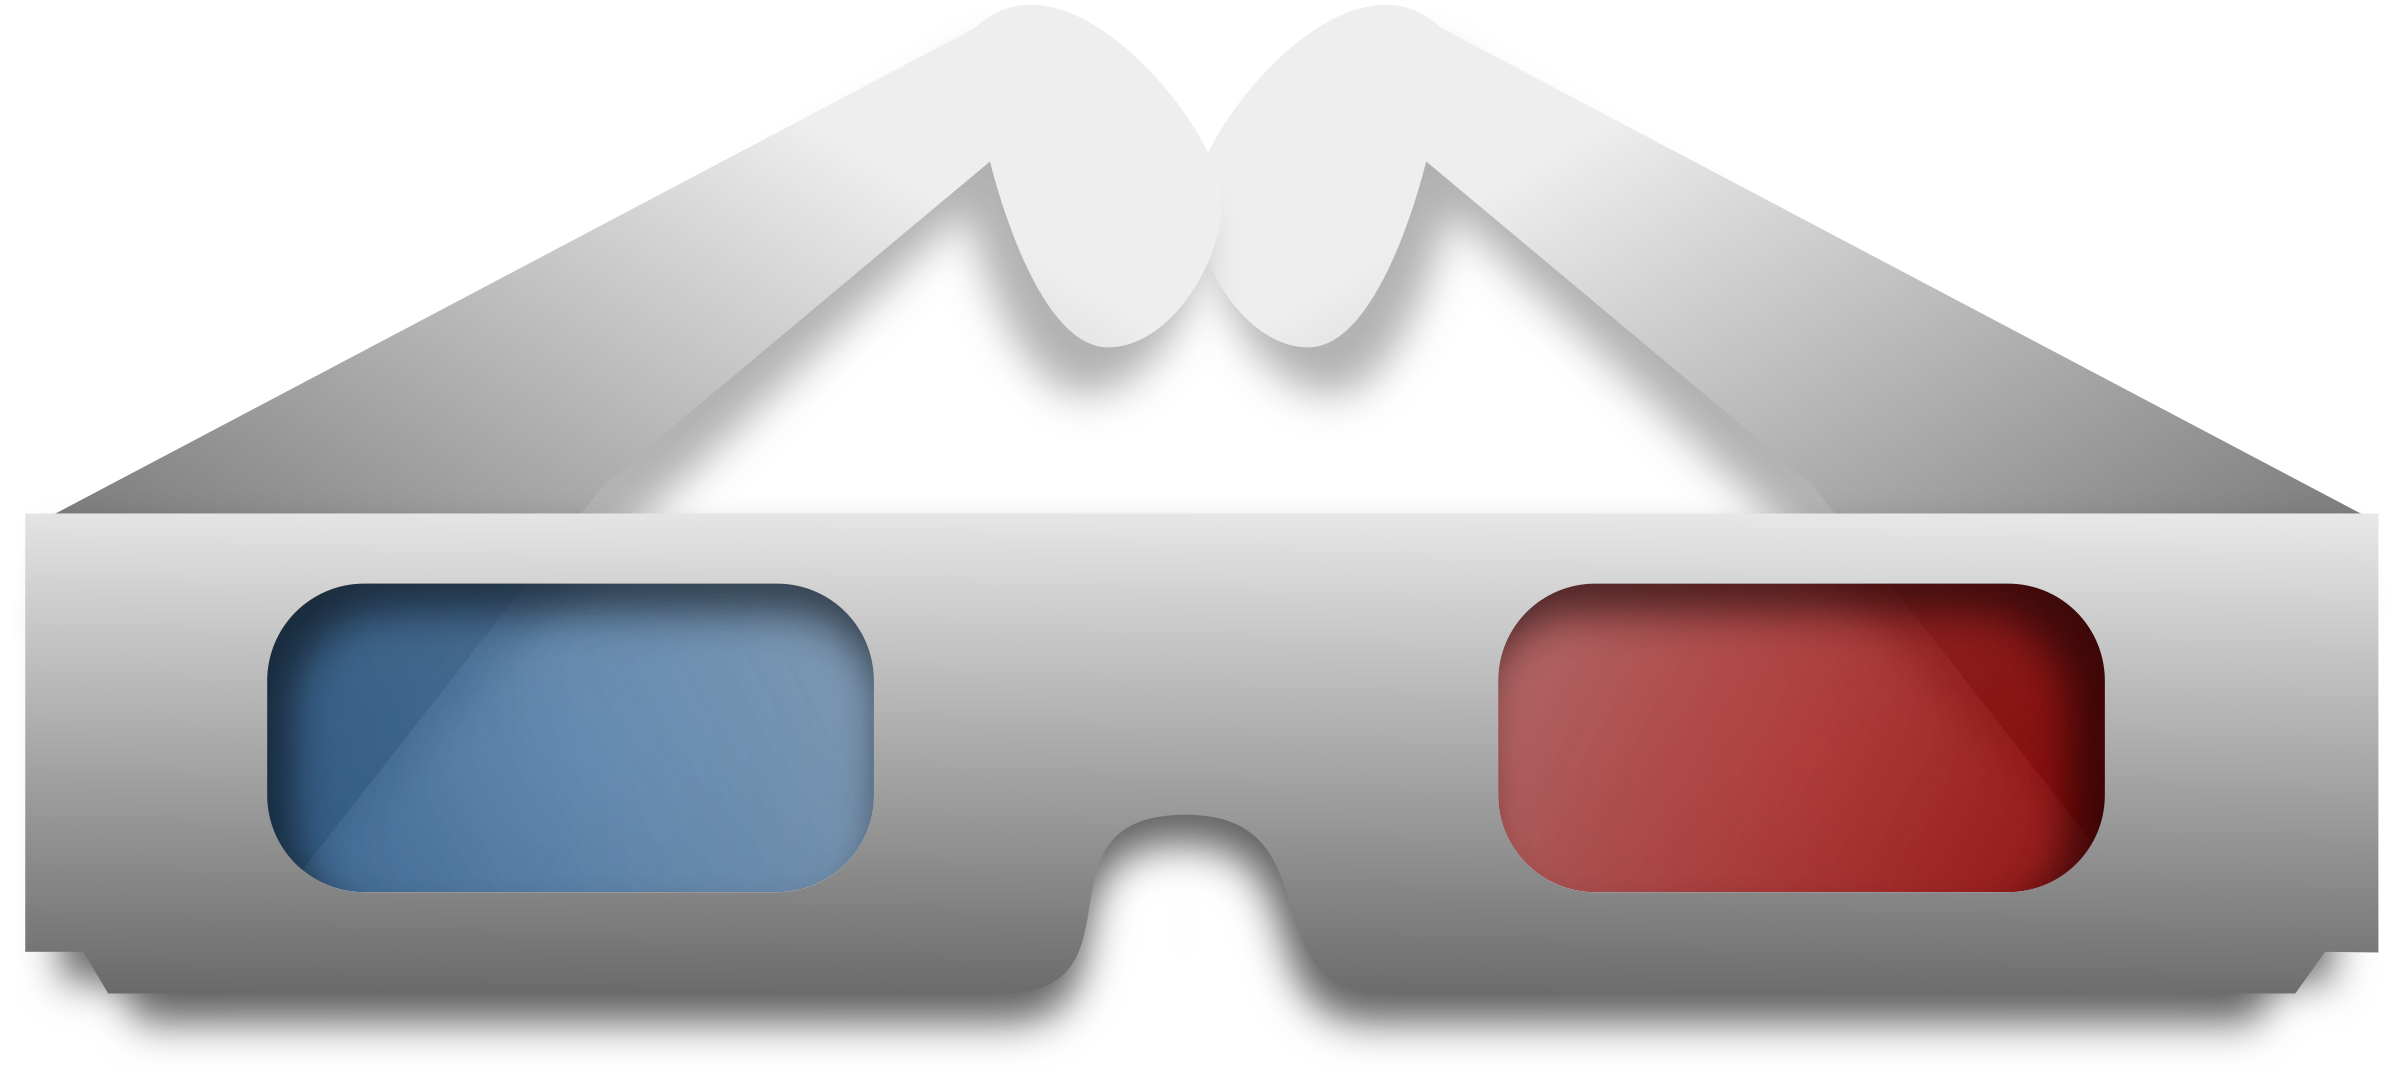 Glasses clipart movie. Free d cliparts download